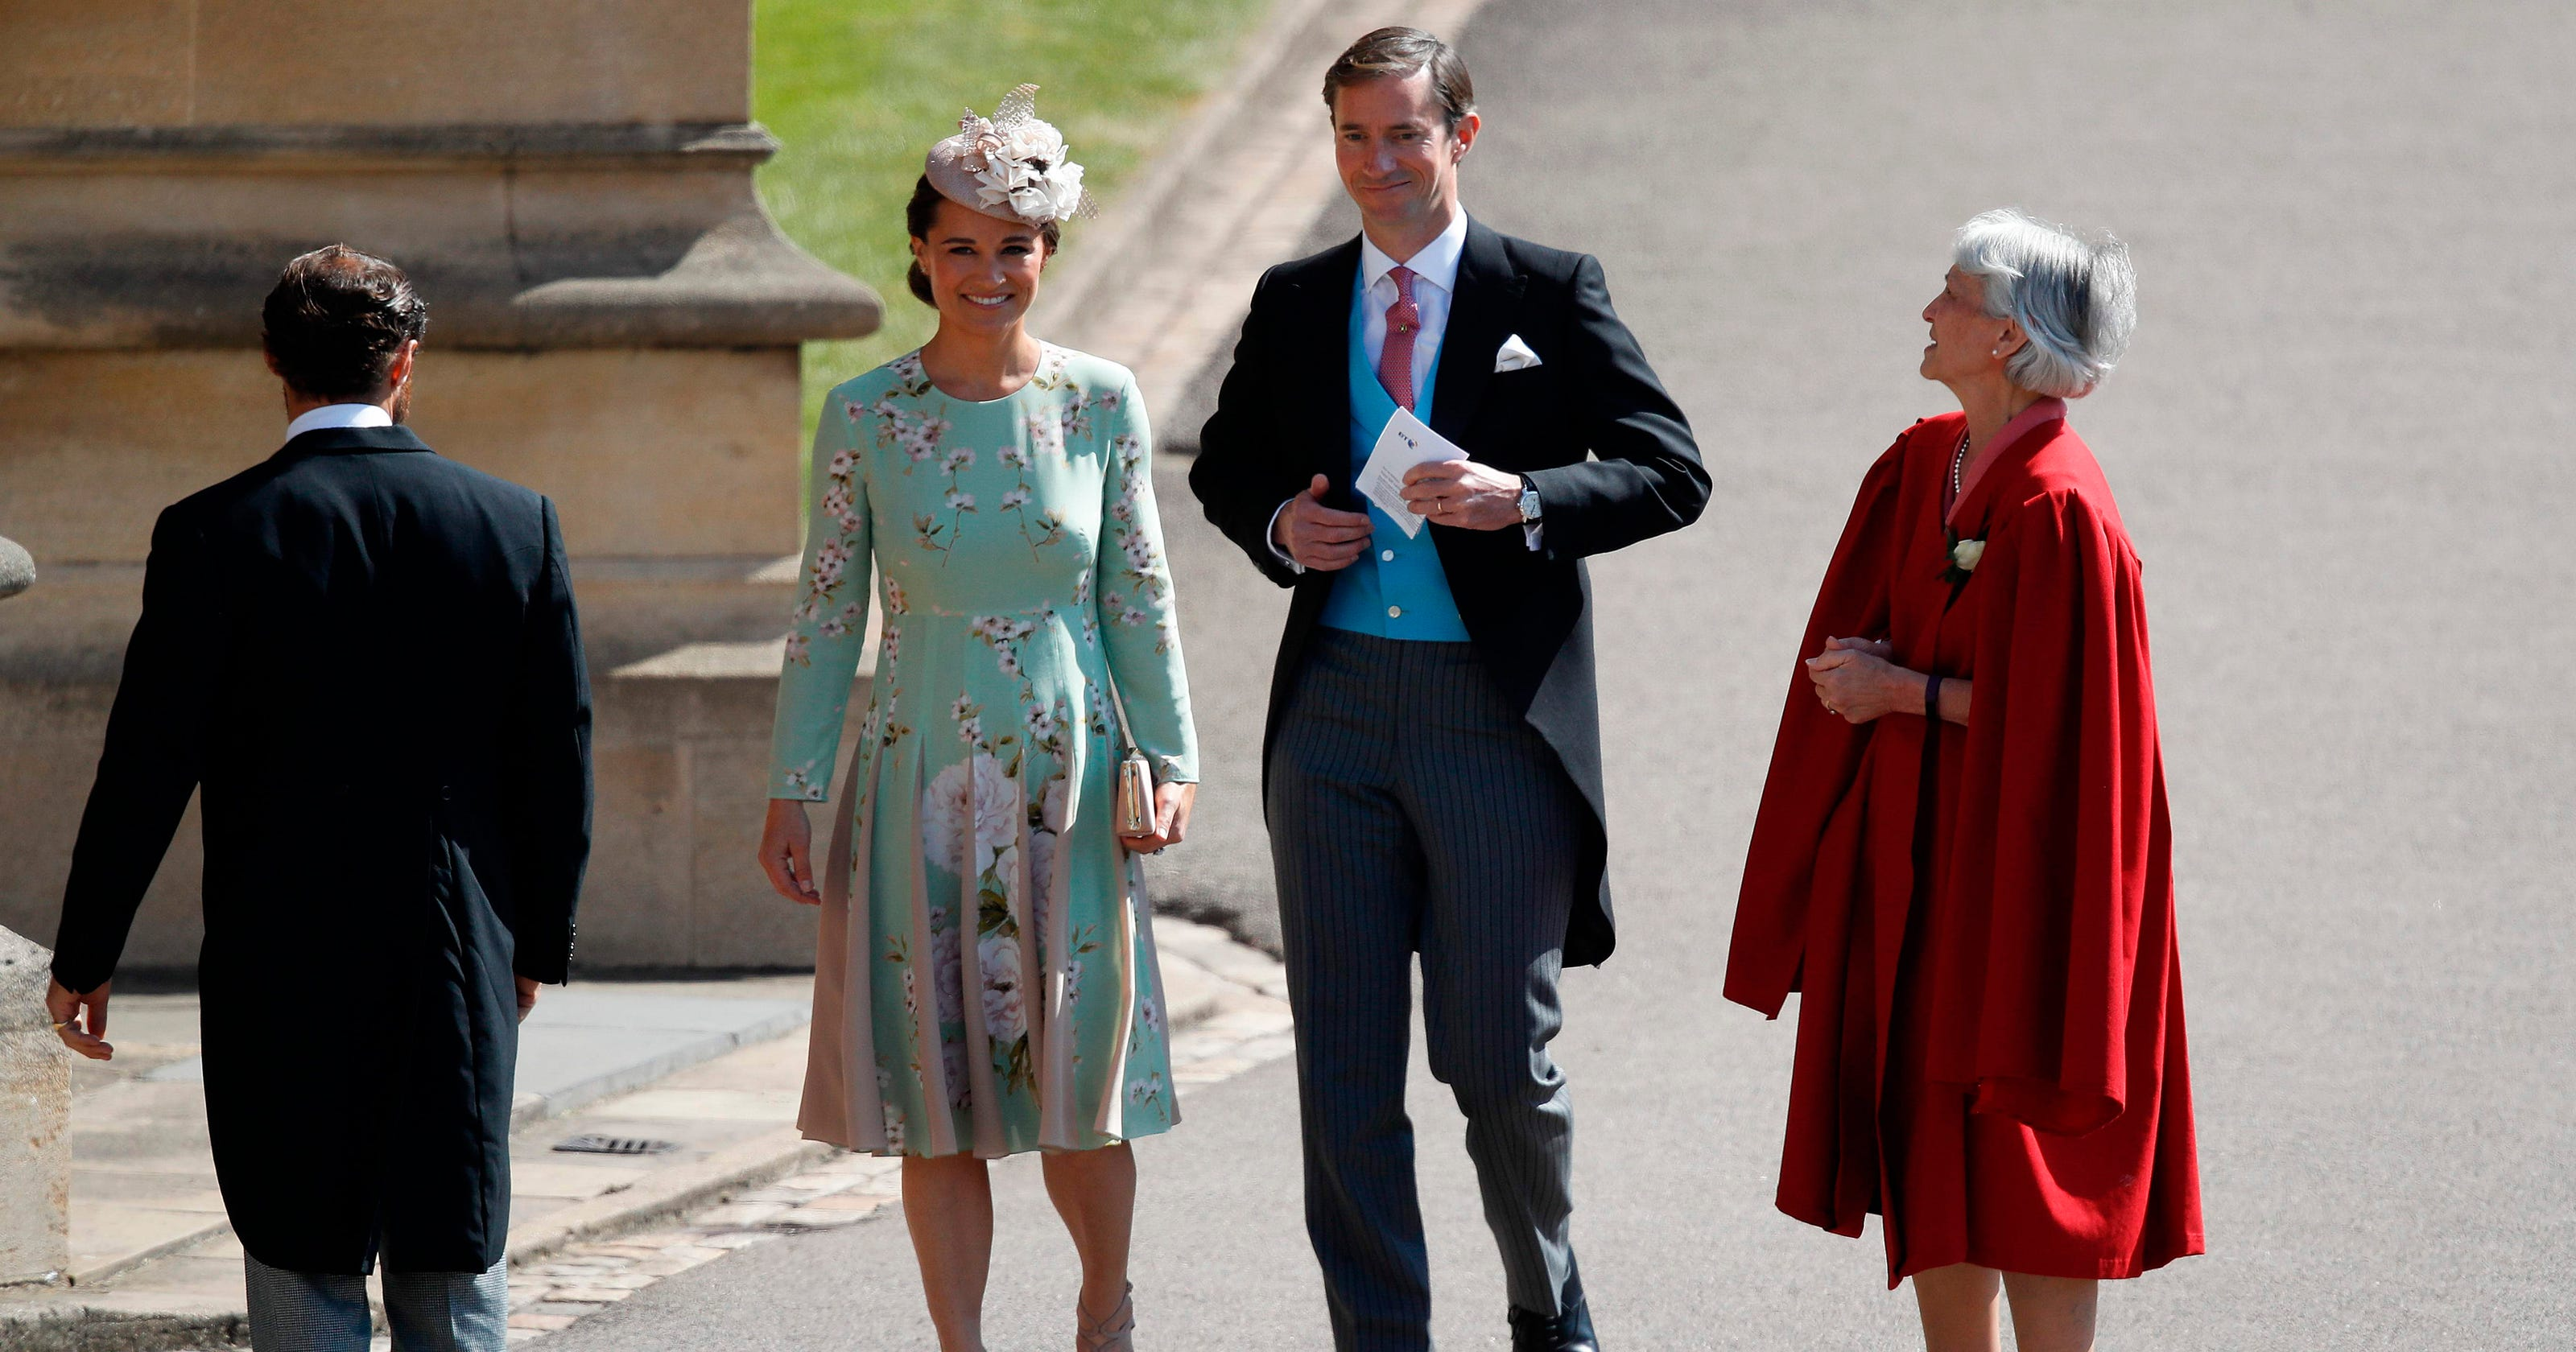 Pippa Middleton steals the show at another royal wedding